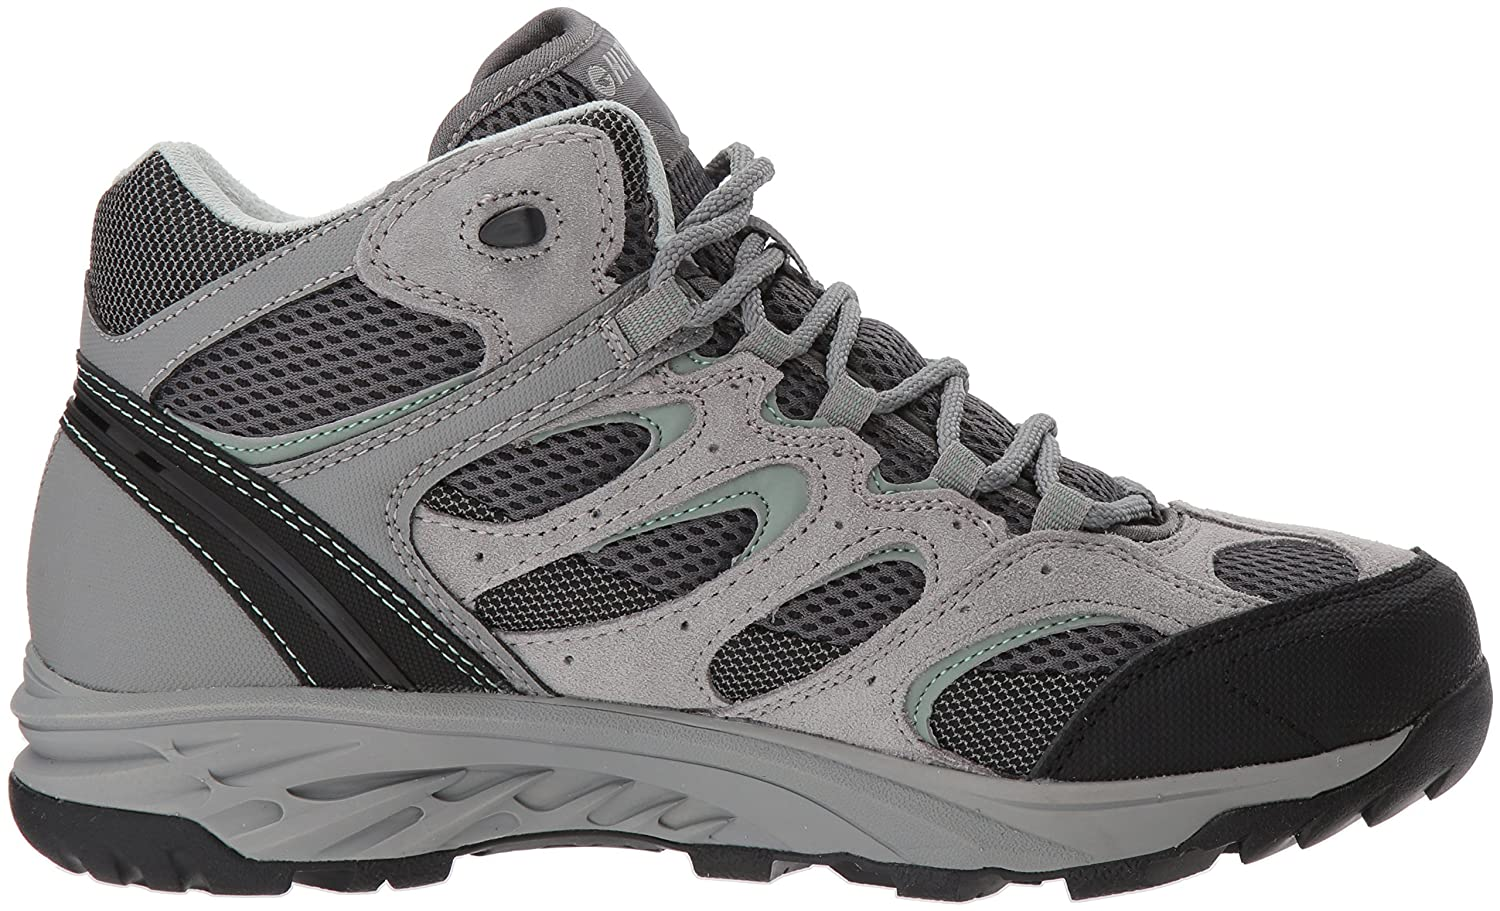 Hi-Tec Women's V-Lite Wild-Fire Mid I Waterproof Hiking Boot B074PWTN19 090M Medium US|Cool Grey/Graphite/Iceberg Green